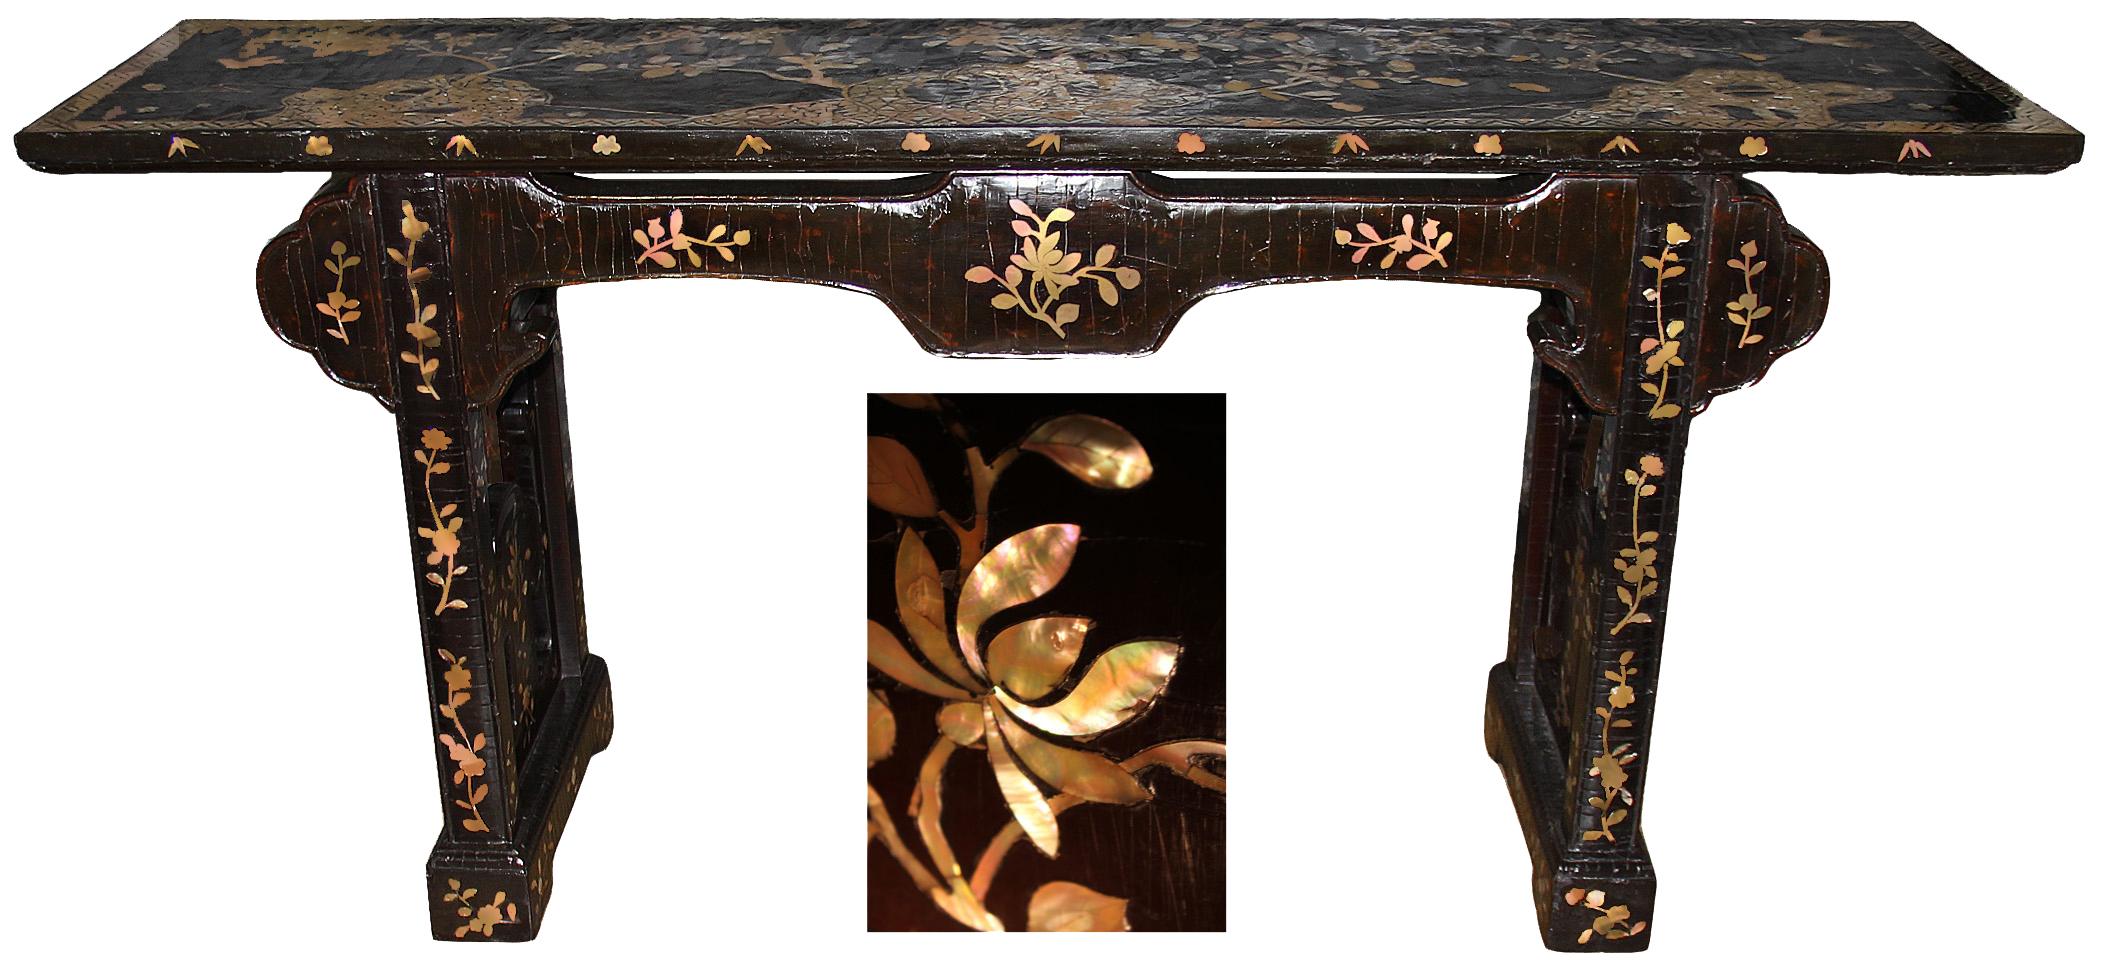 A Fine Late 17th Century (Post Manchu Invasion by China) Exuberantly Colorful Qing Dynasty Black Lacquer and Abalone Inlaid Altar (or Sofa) Table No. 4597